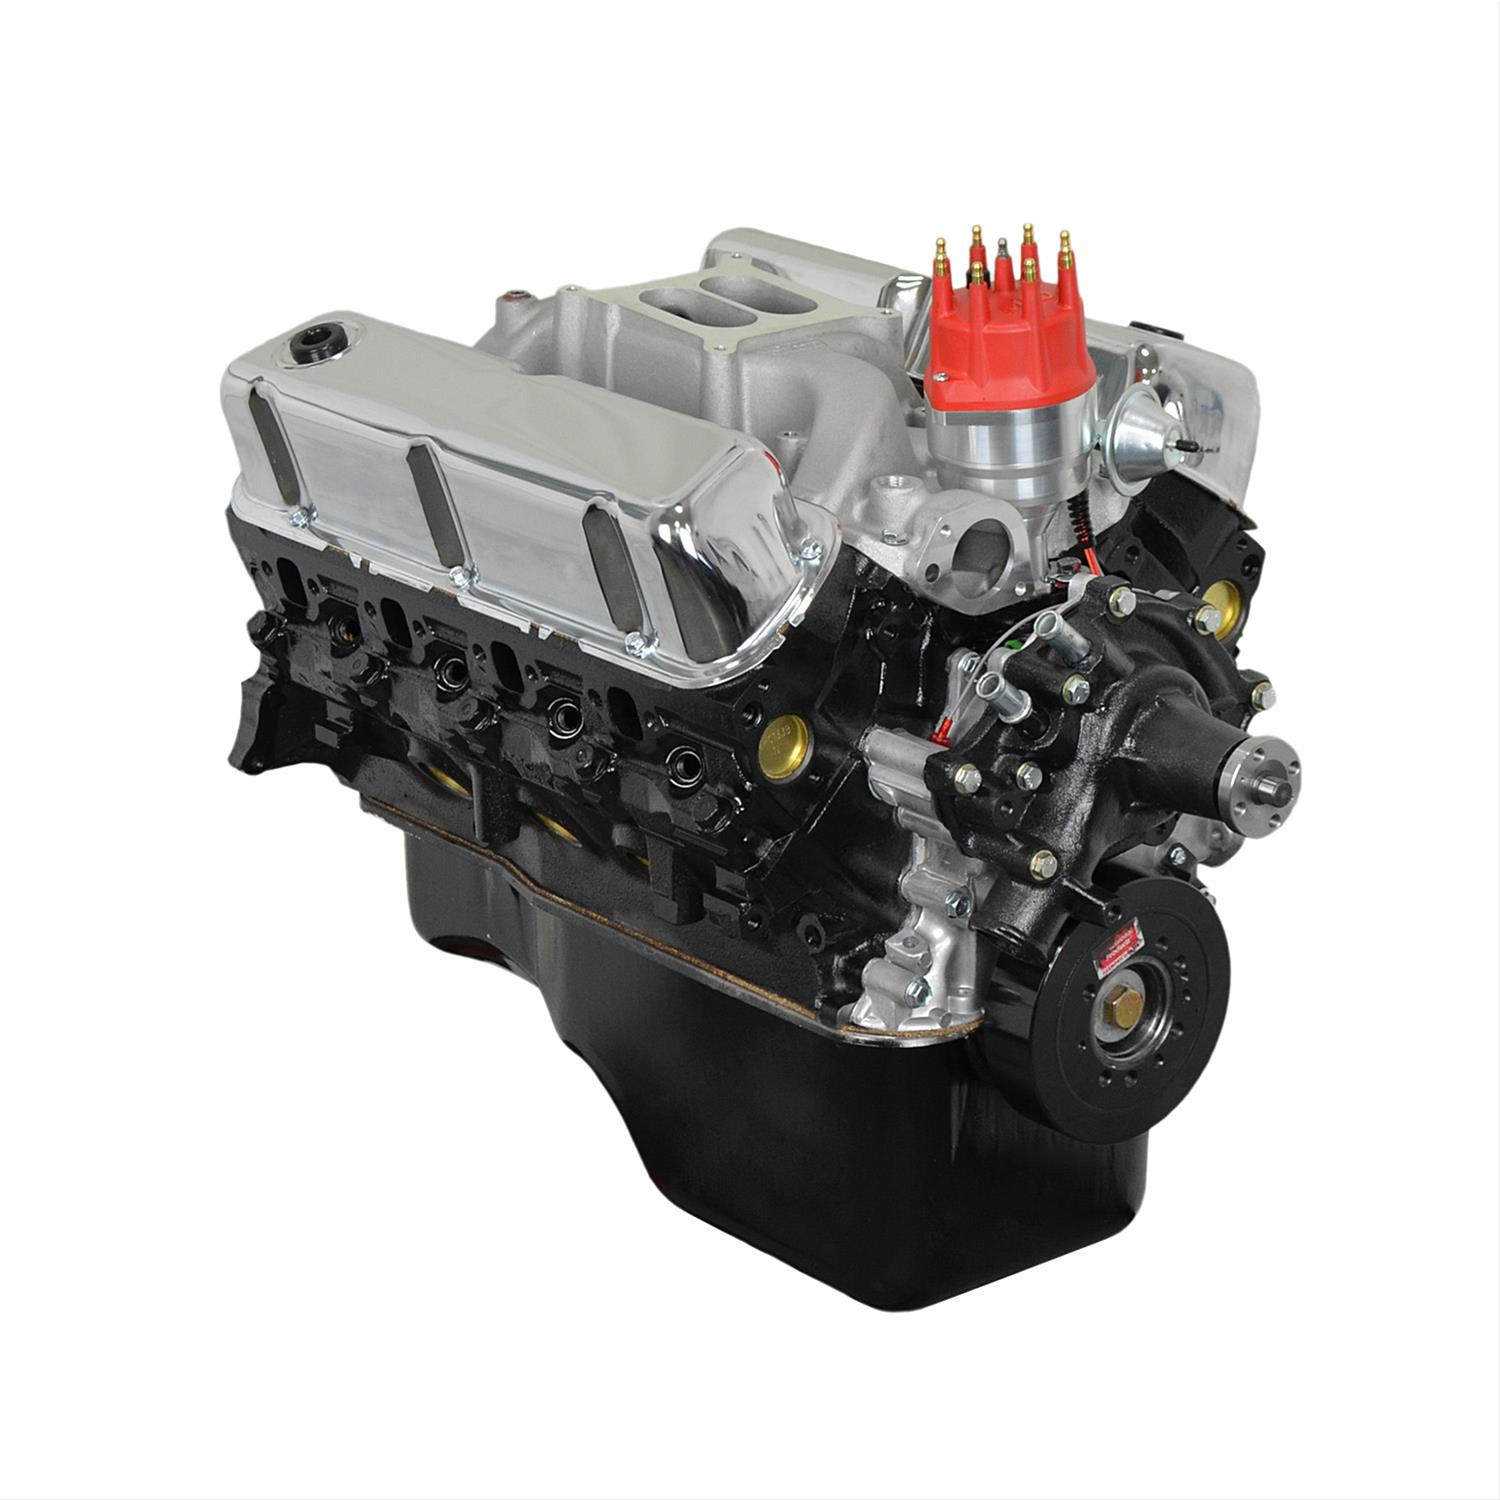 Atk high performance ford 302 300hp stage 2 crate engines for Ford stroker motor sizes